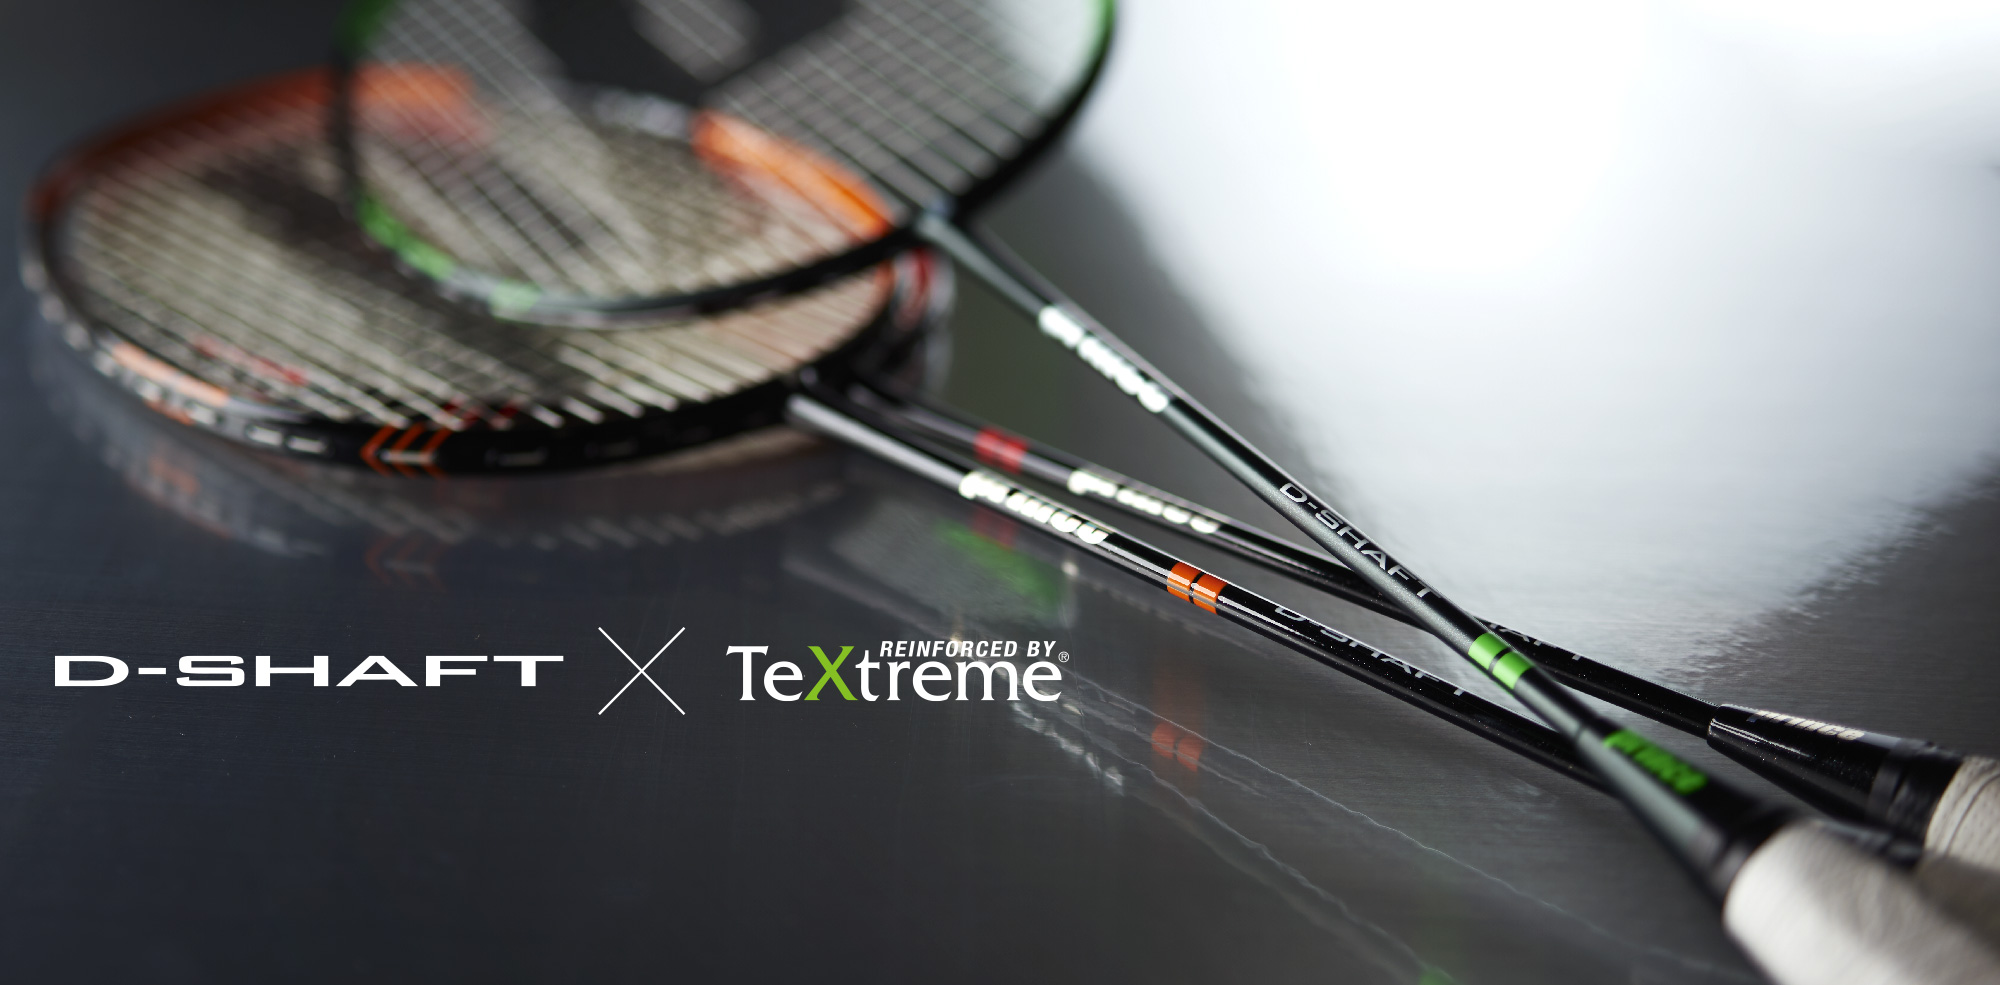 prince | D-SHAFT x TeXtreame